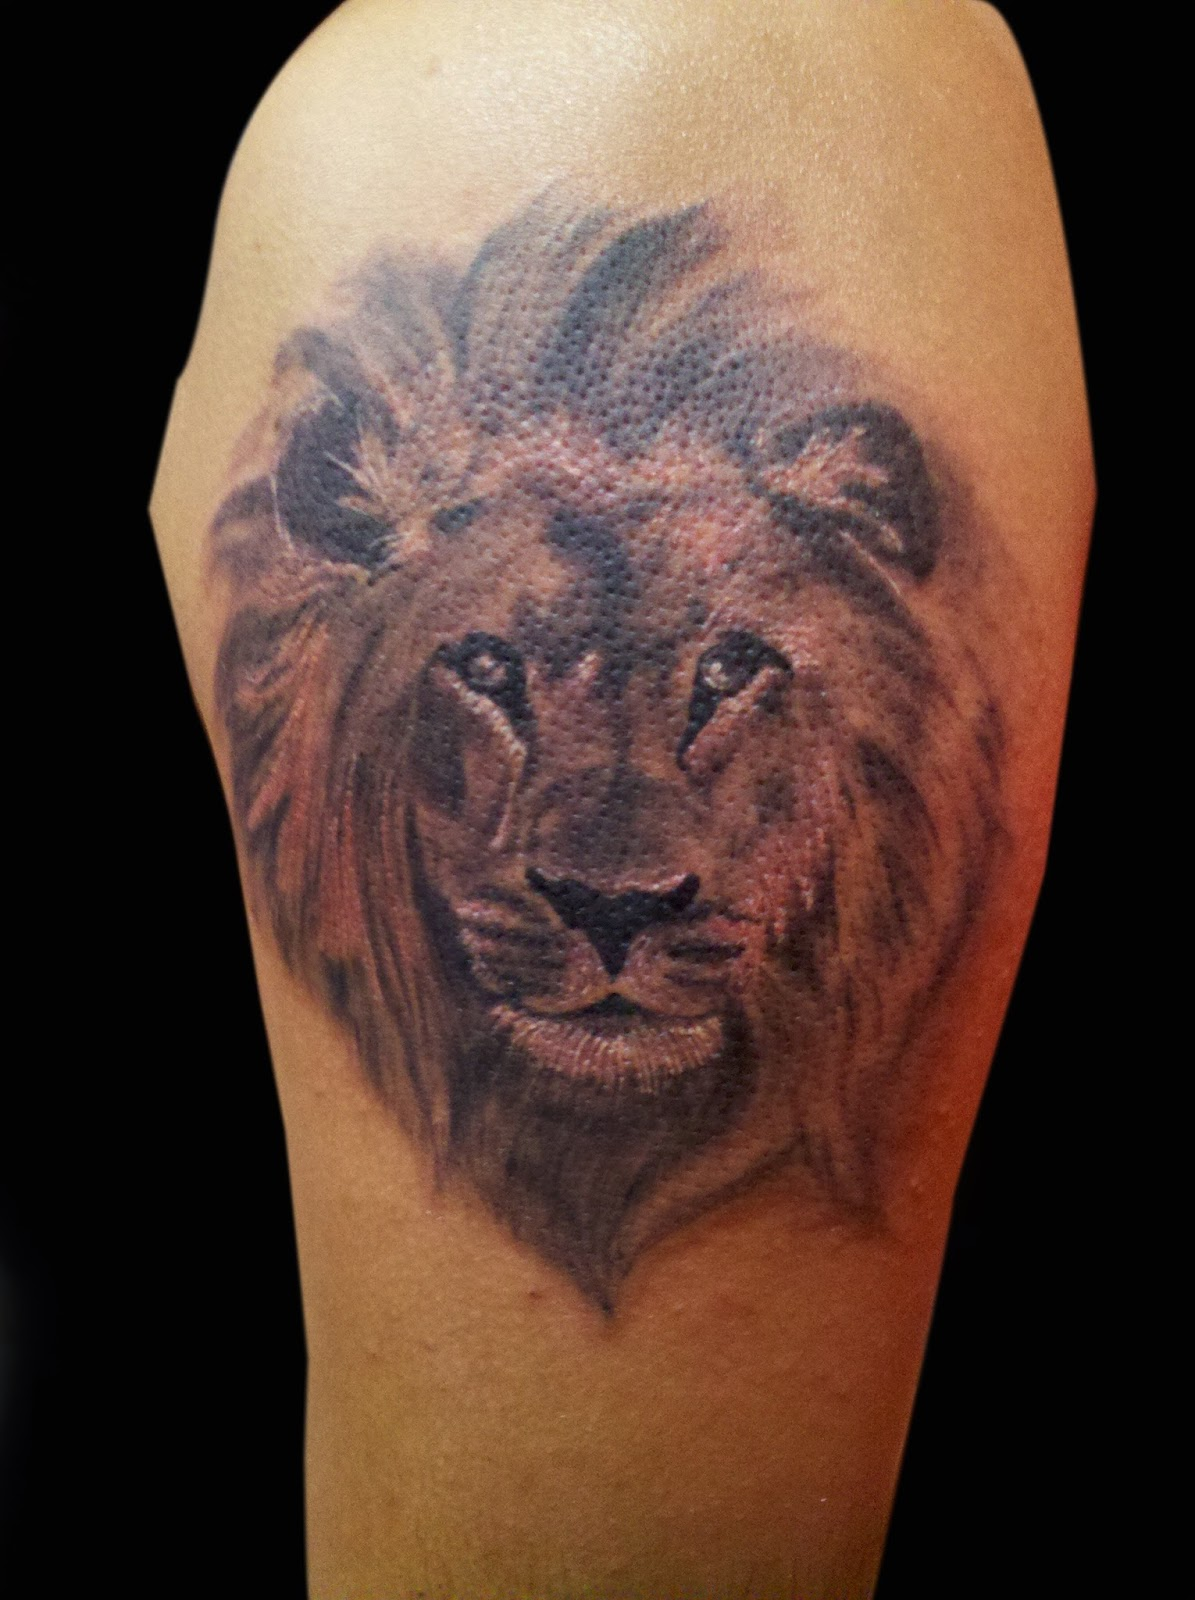 Best tattoos ever done lifestyles ideas for Best tattoos ever done